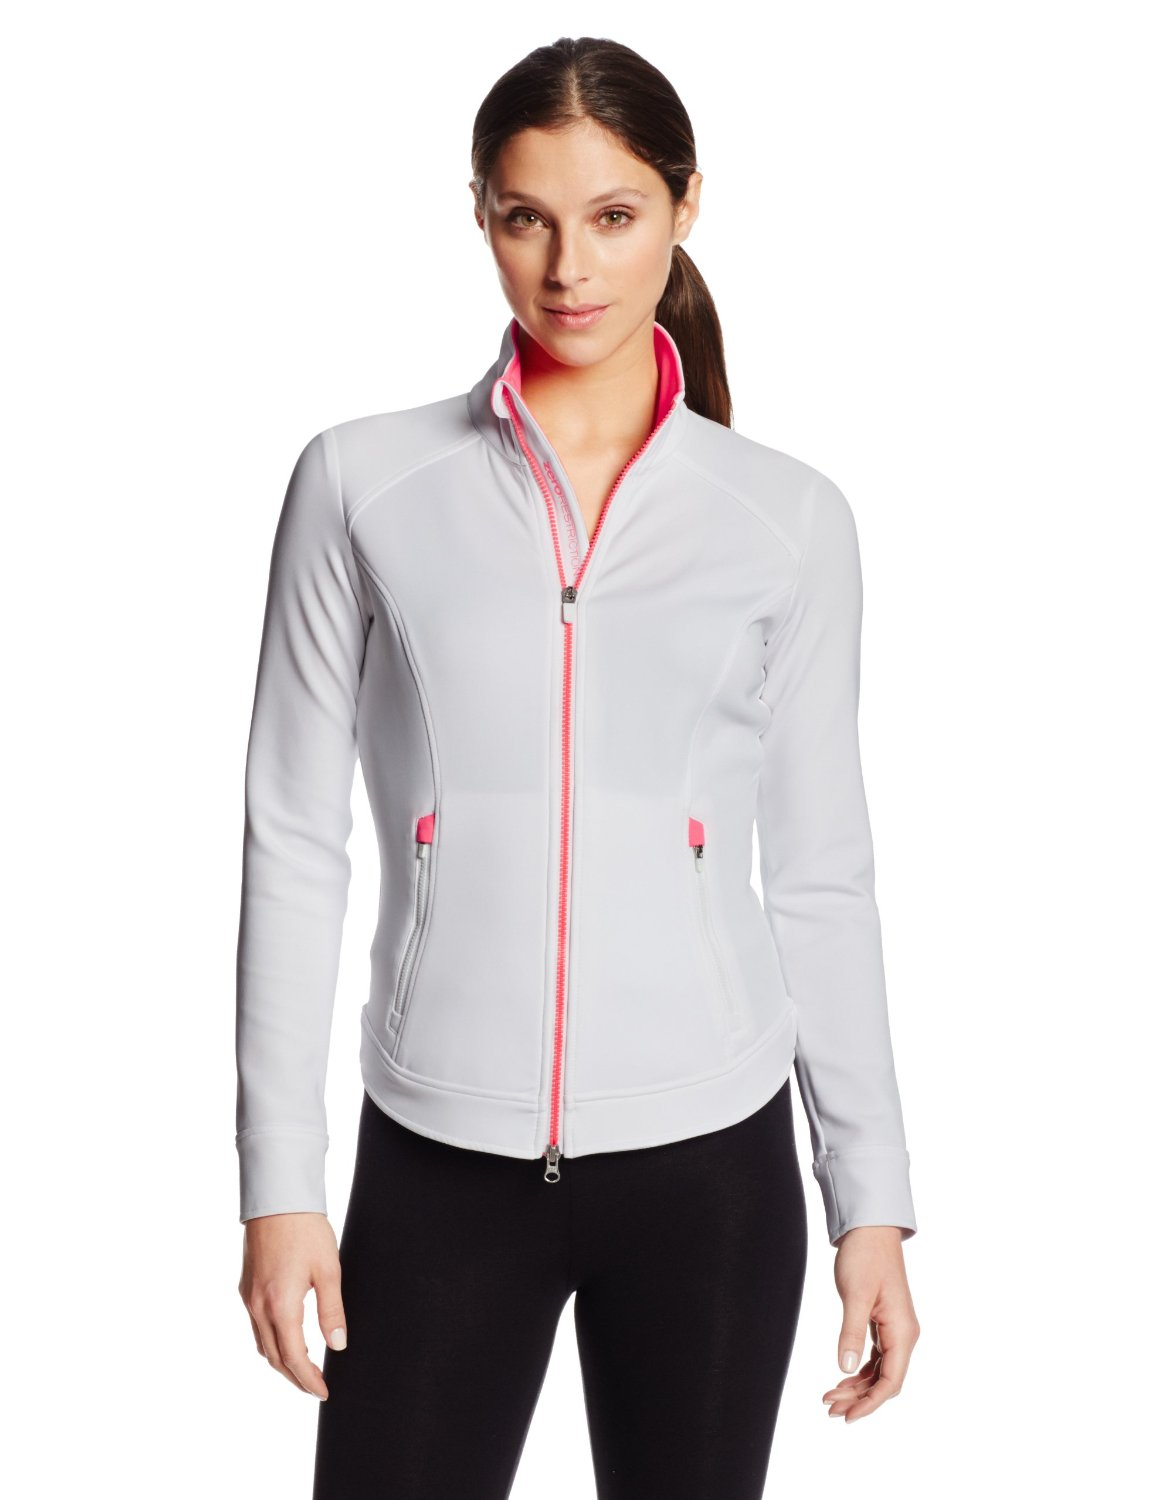 Womens Zero Restriction Amelia Z500 Golf Jerseys